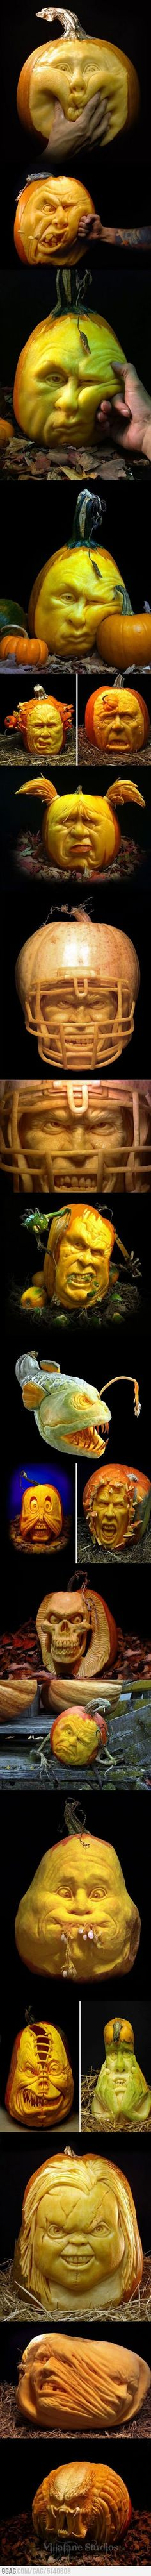 Amazing pumpkins.